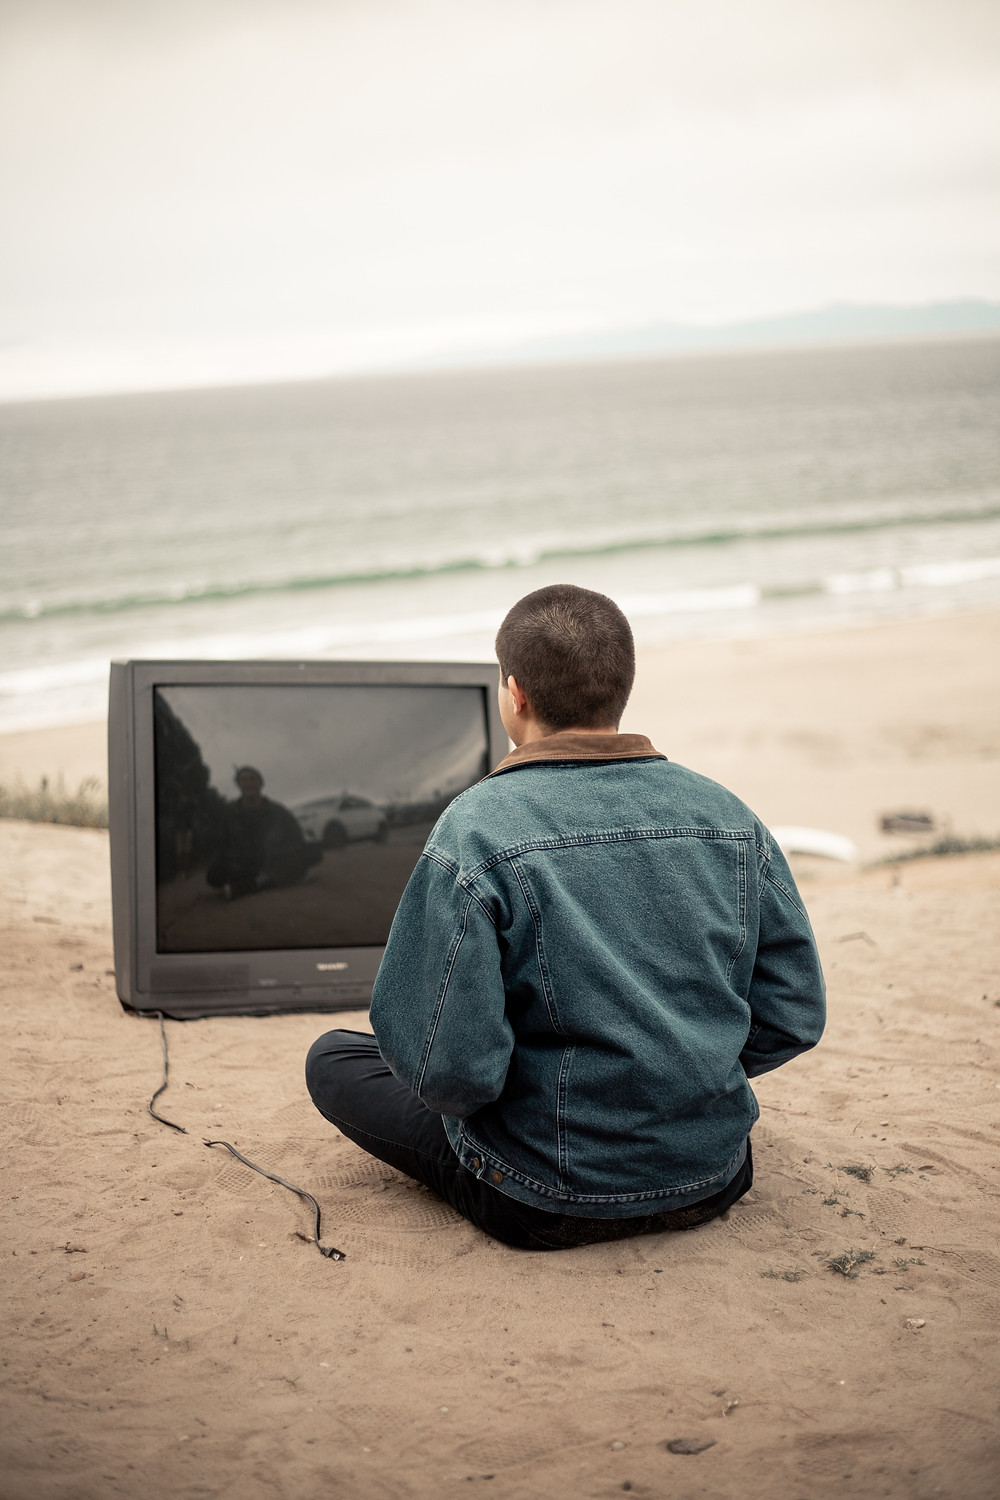 Man sitting on a beach in front of an unplugged TV limiting his media exposure during coronavirus to help manage his anxiety in Englewood CO. We can help with anxiety treatment and therapy at Catalyss Counseling in Denver CO 80209 and 80210